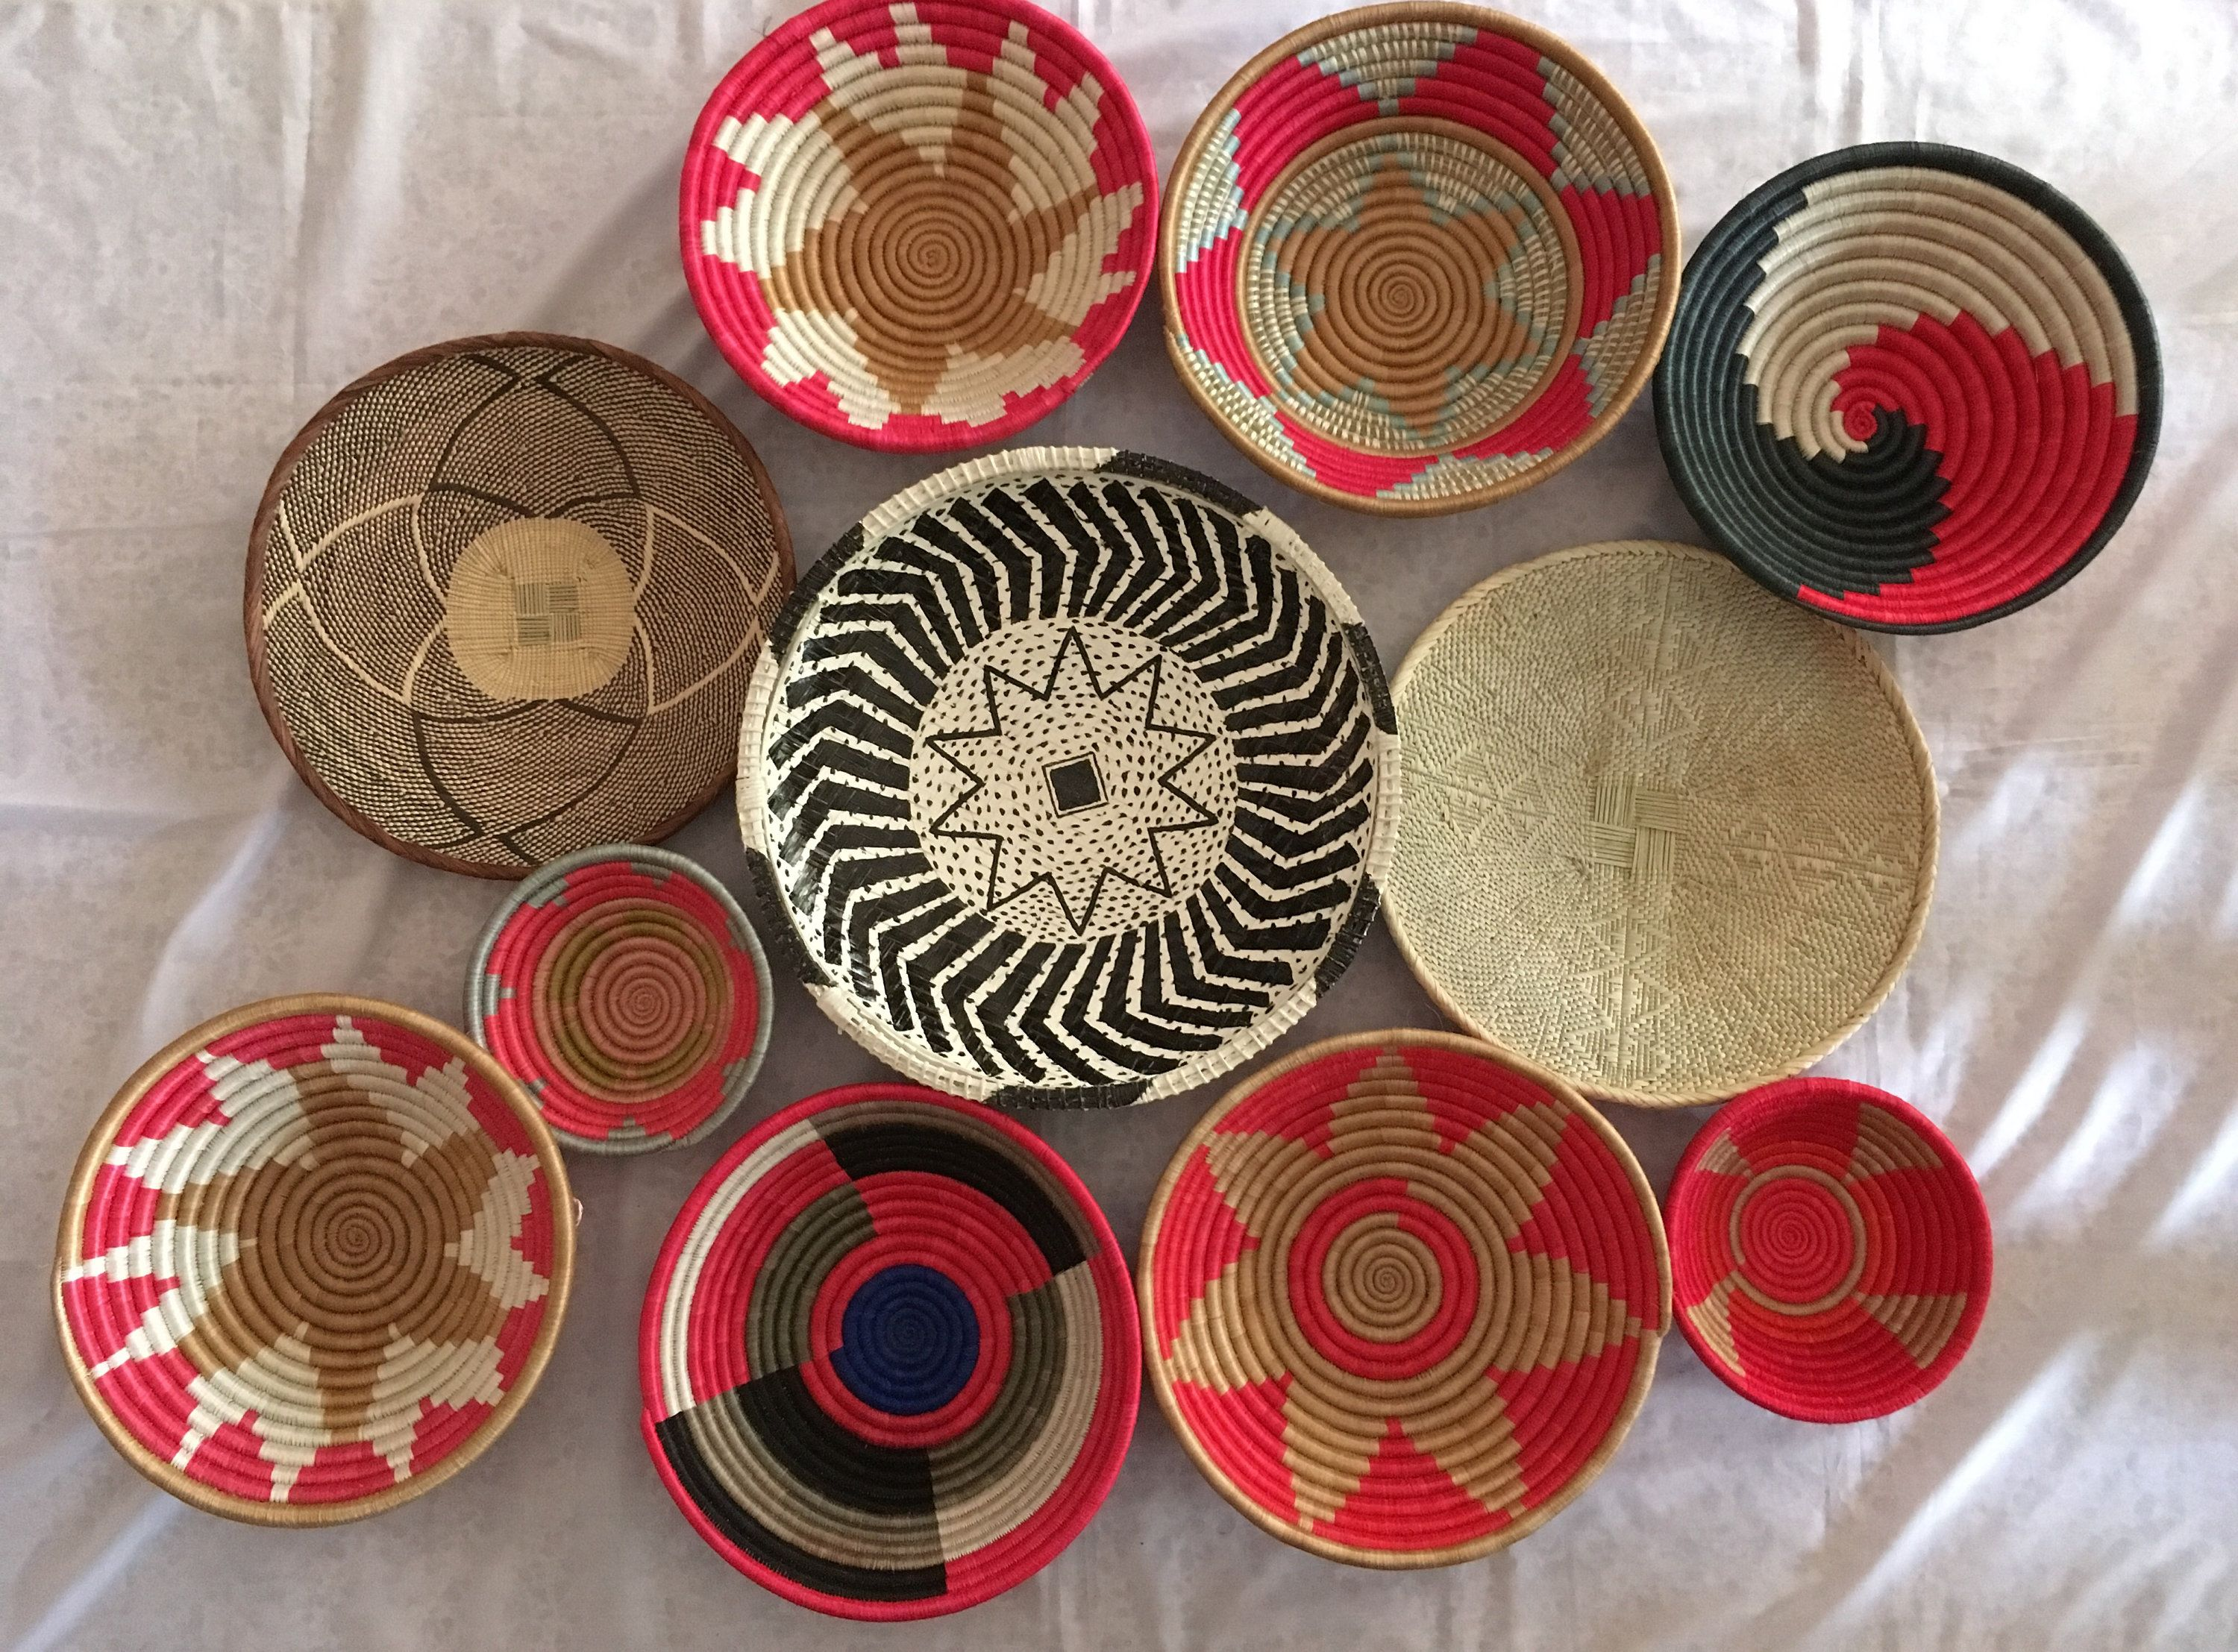 African Baskets Shop Grouping Baskets Wall Hanging Baskets Decor Vintage Baskets Decoration Wall Decoration Baskets Handcrafted Baskets African Basket Decor African Baskets Baskets On Wall